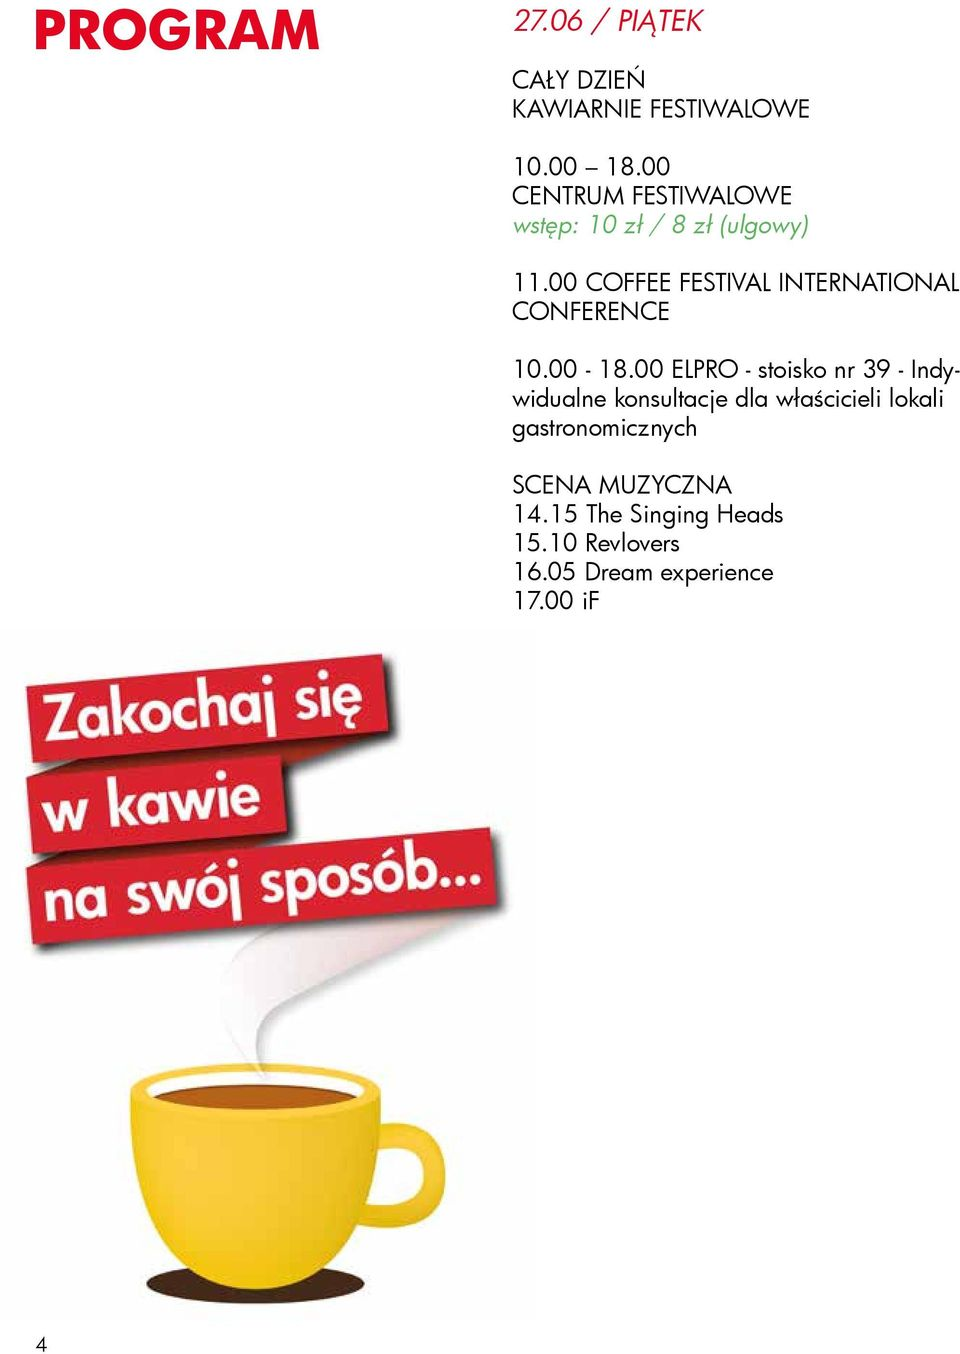 00 COFFEE FESTIVAL INTERNATIONAL CONFERENCE 10.00-18.